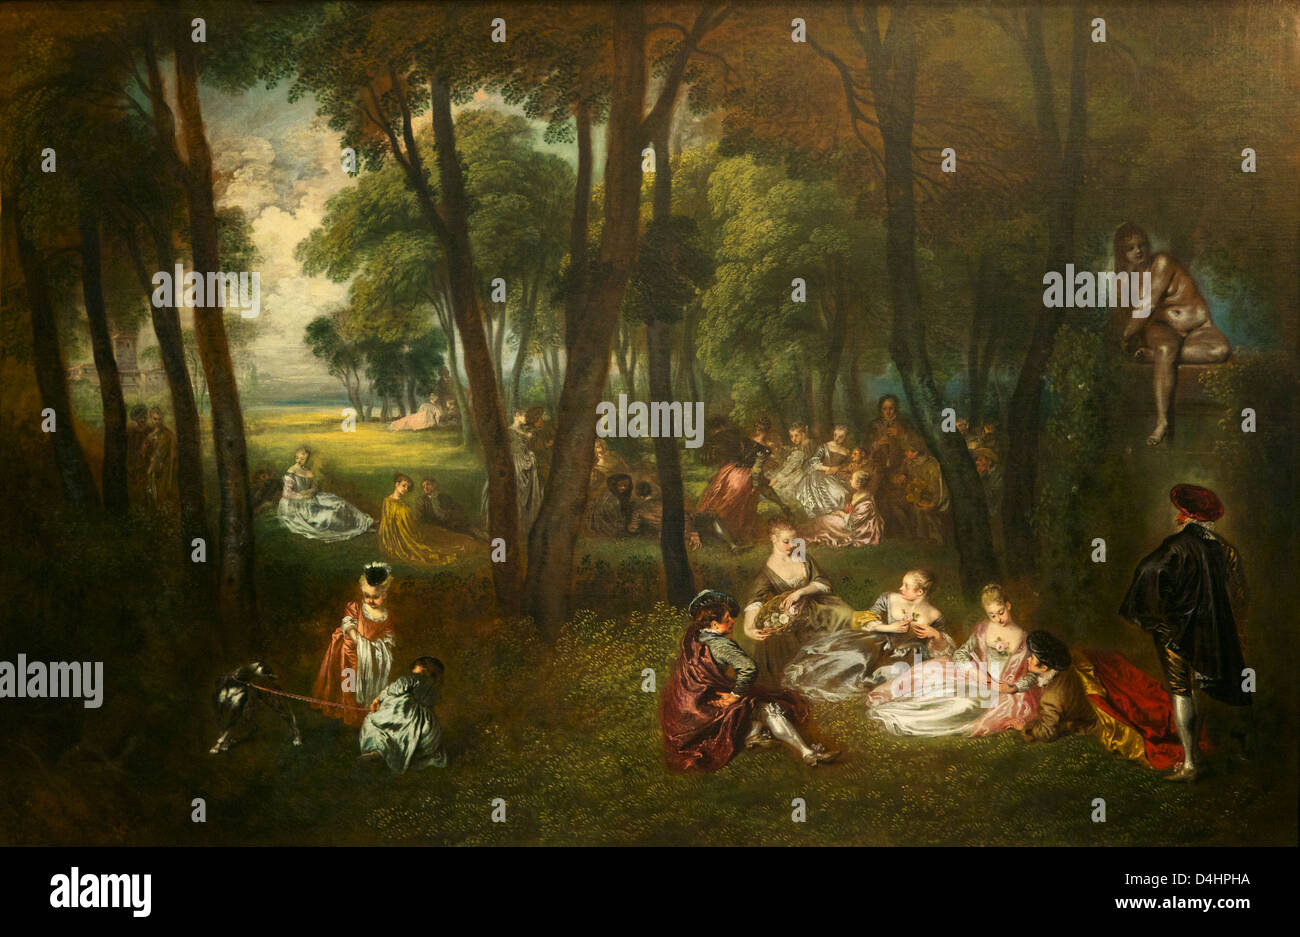 Fete in a Park, by Antoine Watteau, 1719-1721, Wallace Collection, London, England, UK, GB - Stock Image